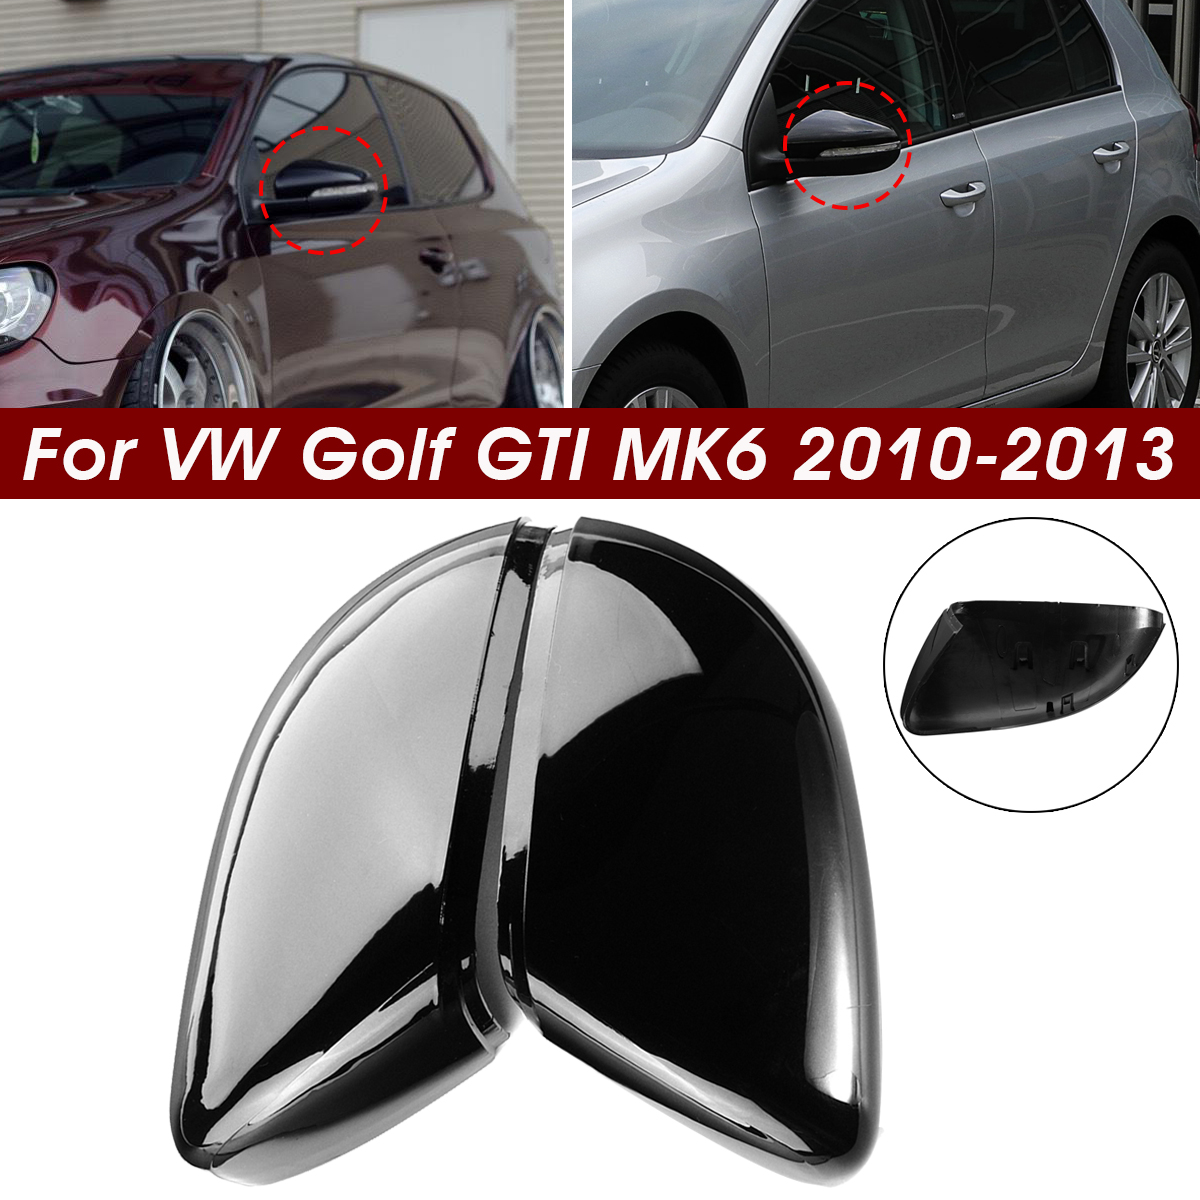 A Pair Wing Rear View Mirror Case Cover Trim Cap For VW Golf GTI MK6 Touran(China)